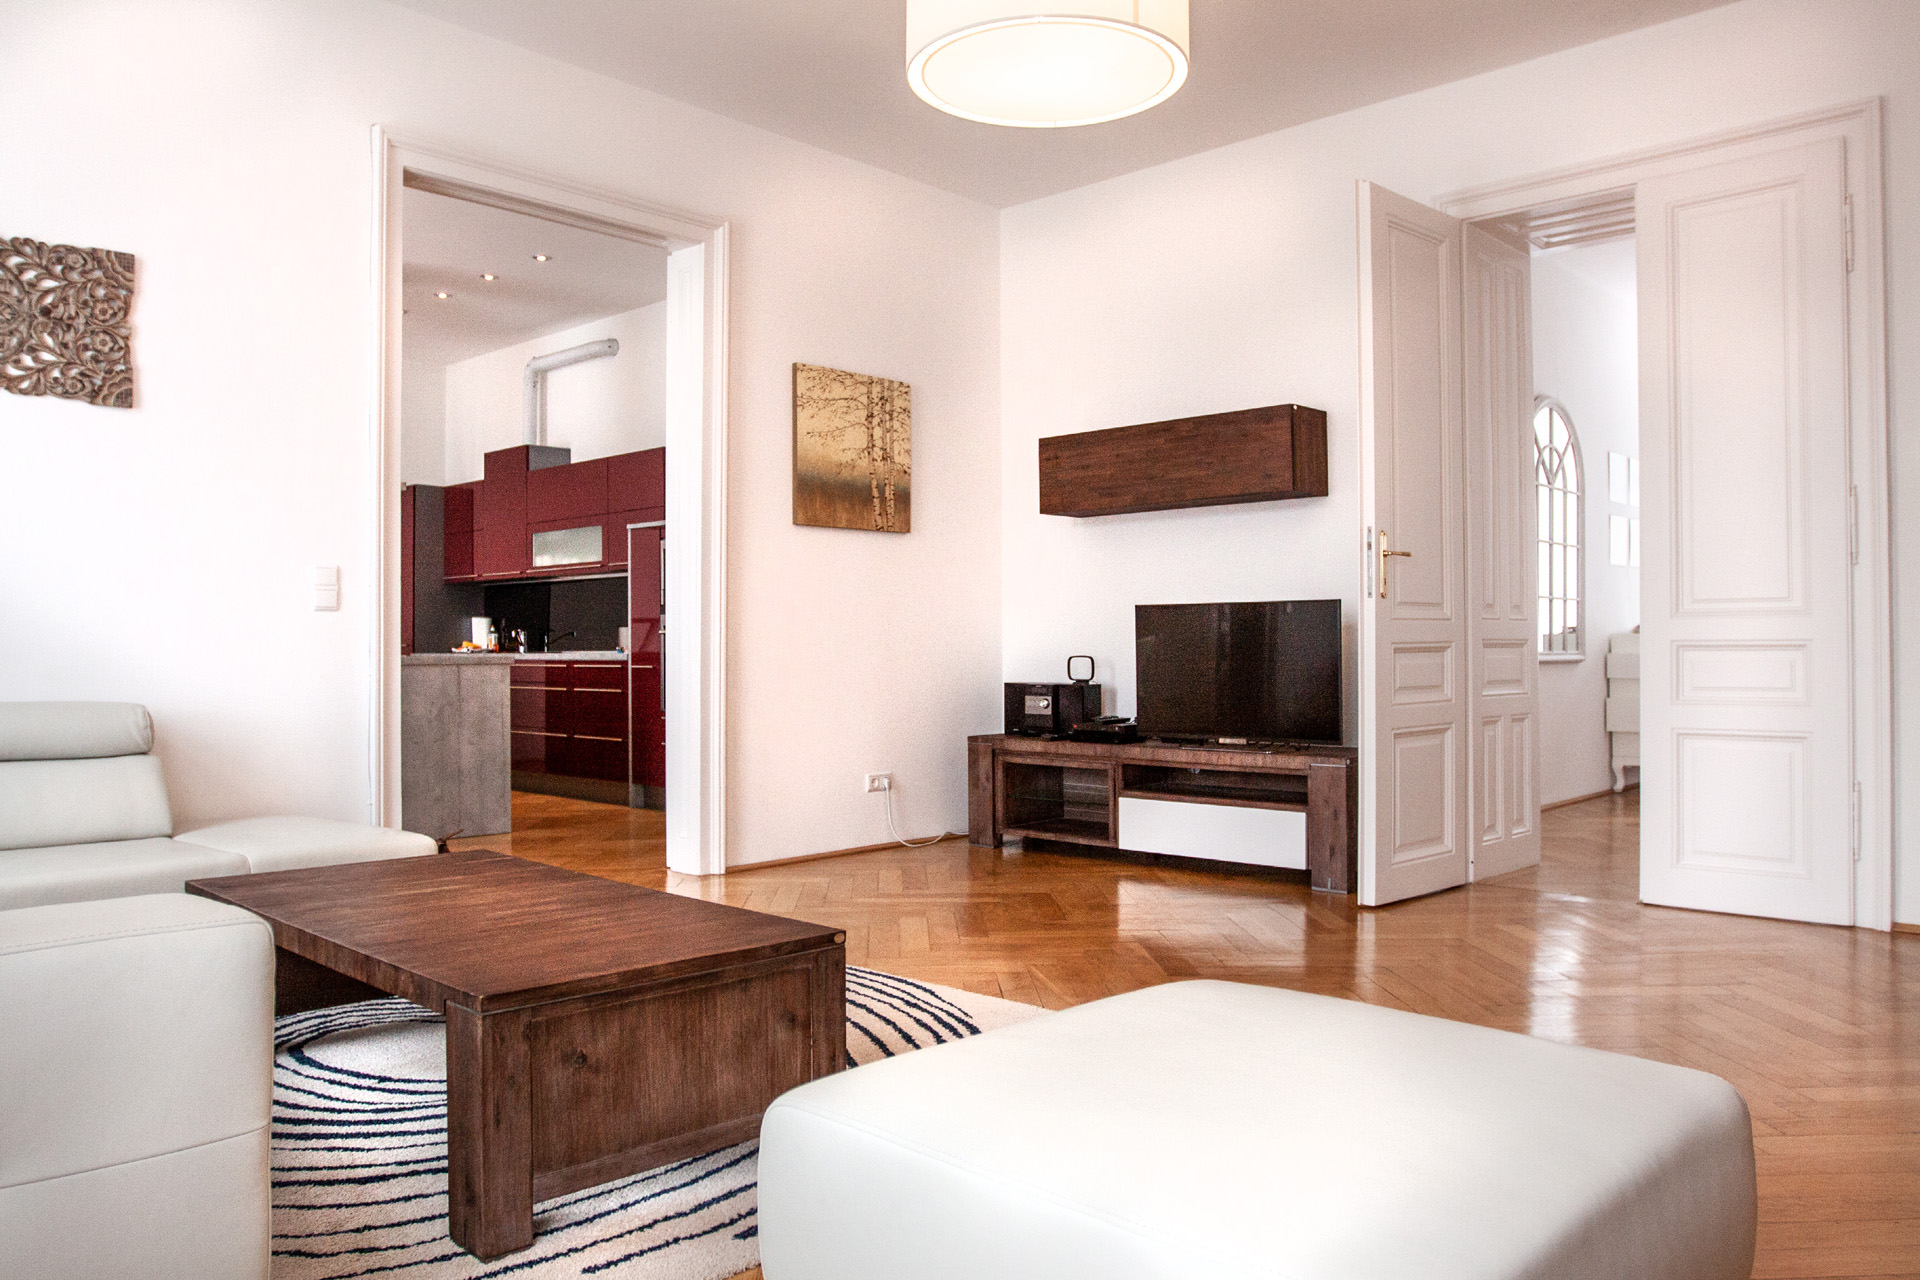 Dr. Riess Apartments: Serviced Business Apartments in Wien